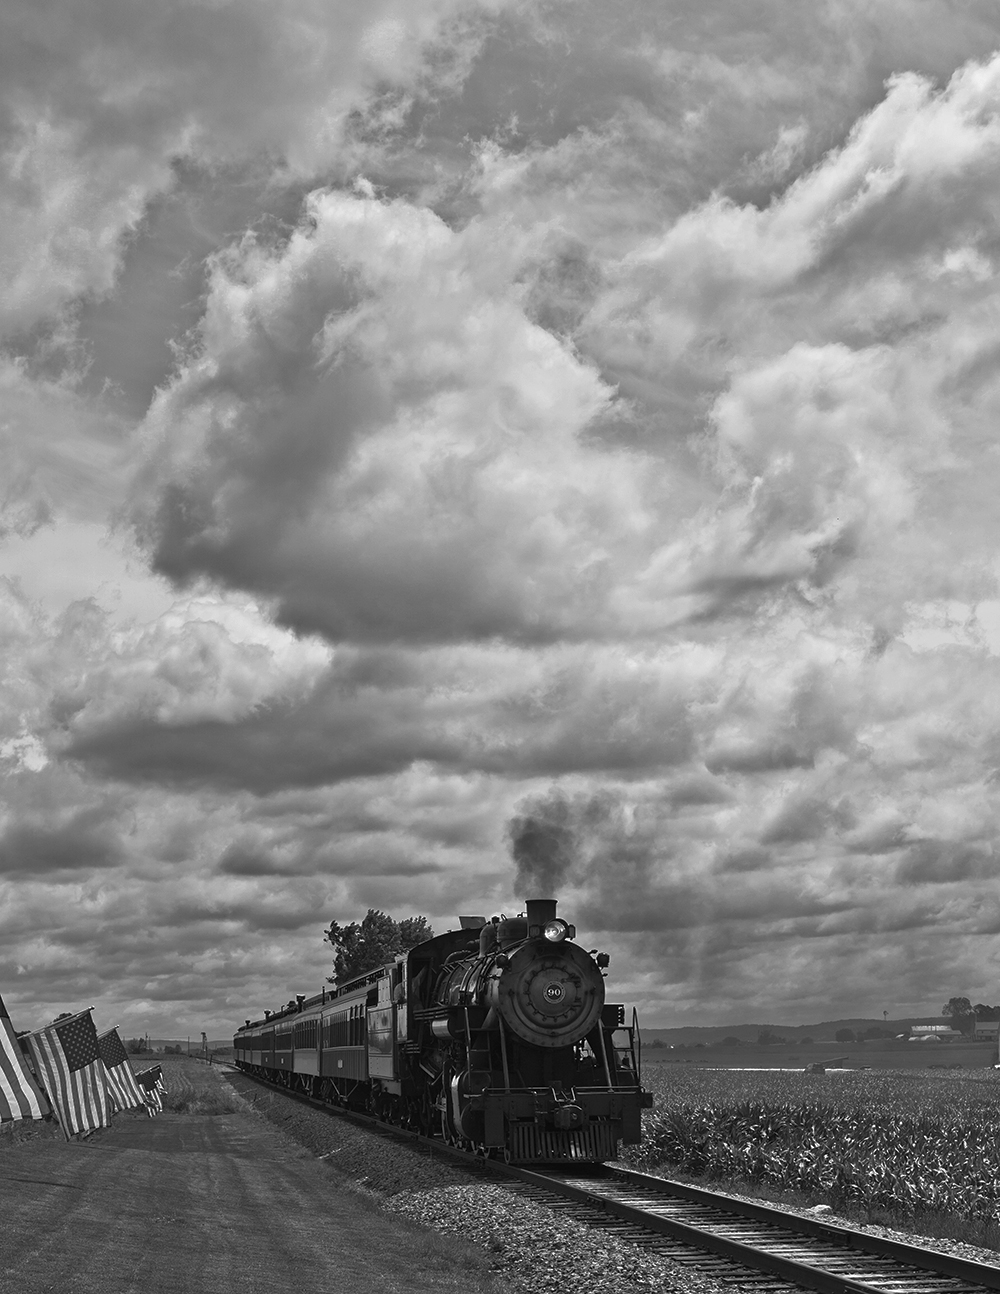 Clouds and train (obviously)